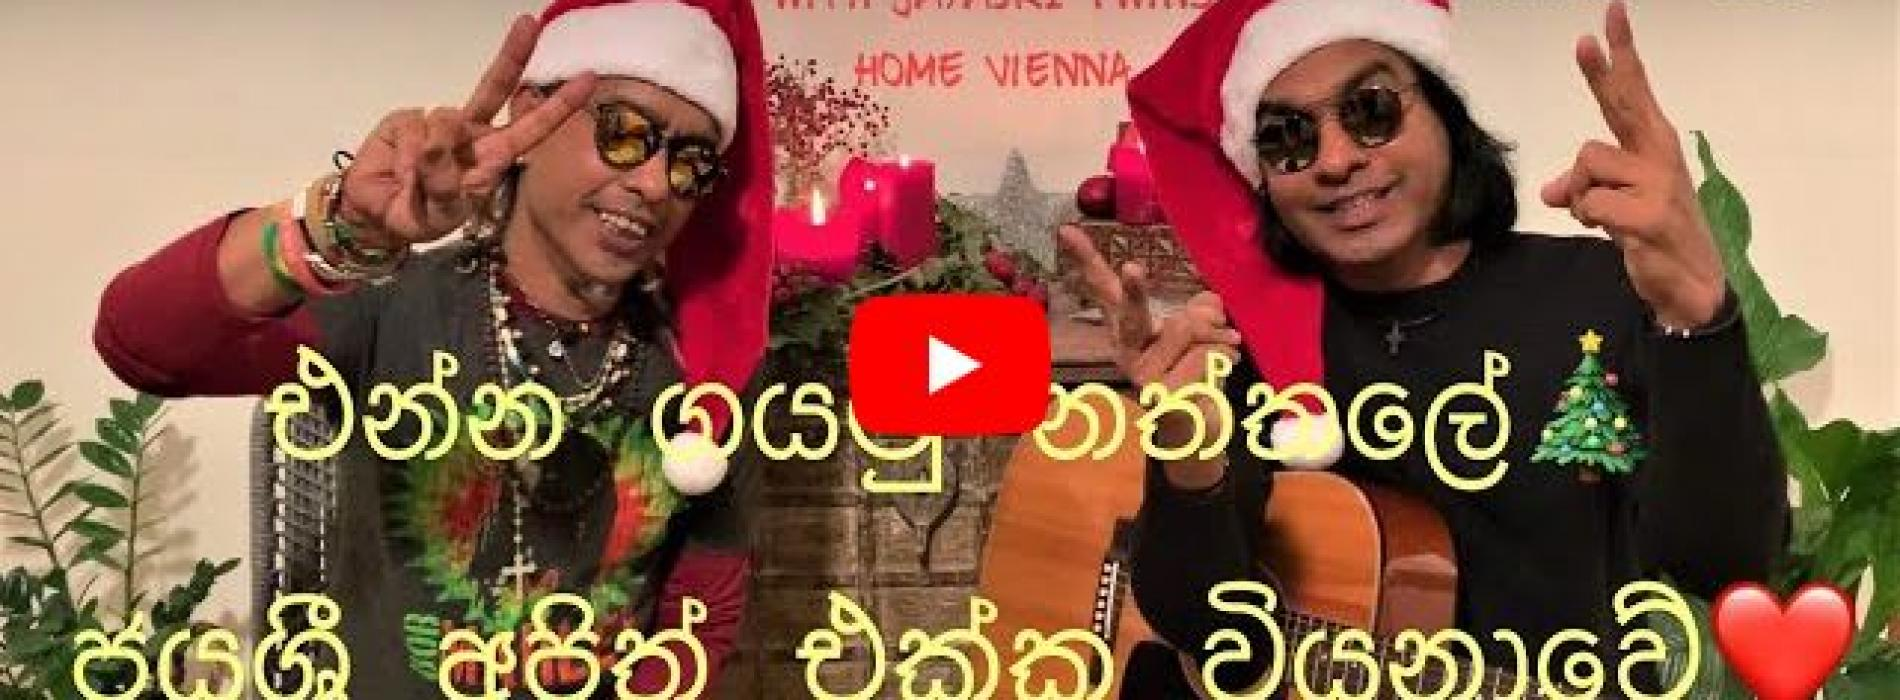 """Seasonal Special : """"Christmas with Jayasri Twins"""" Sing-Along From Vienna Home"""